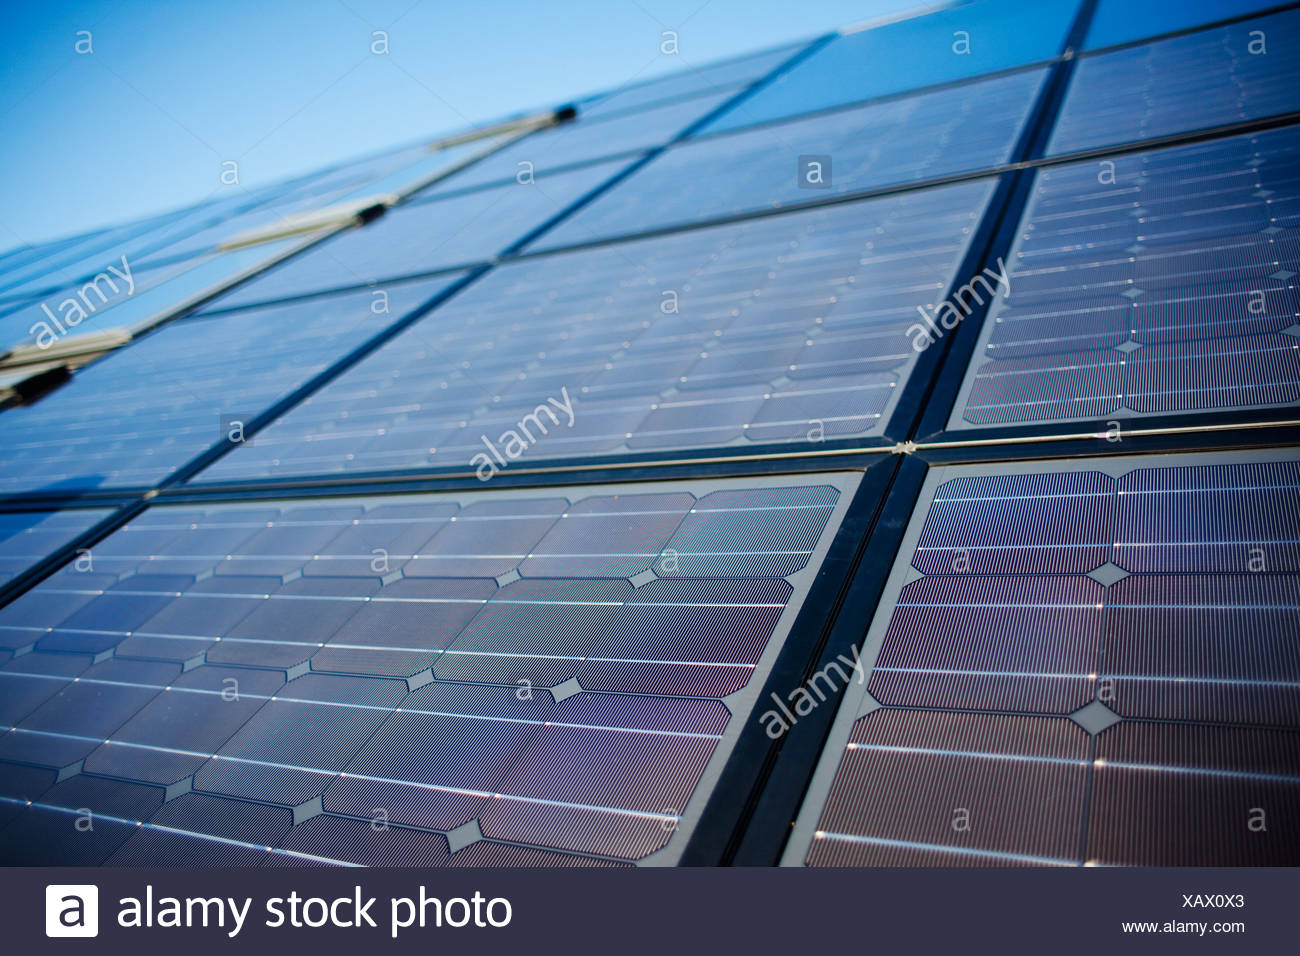 Close-up of large solar panel - Stock Image